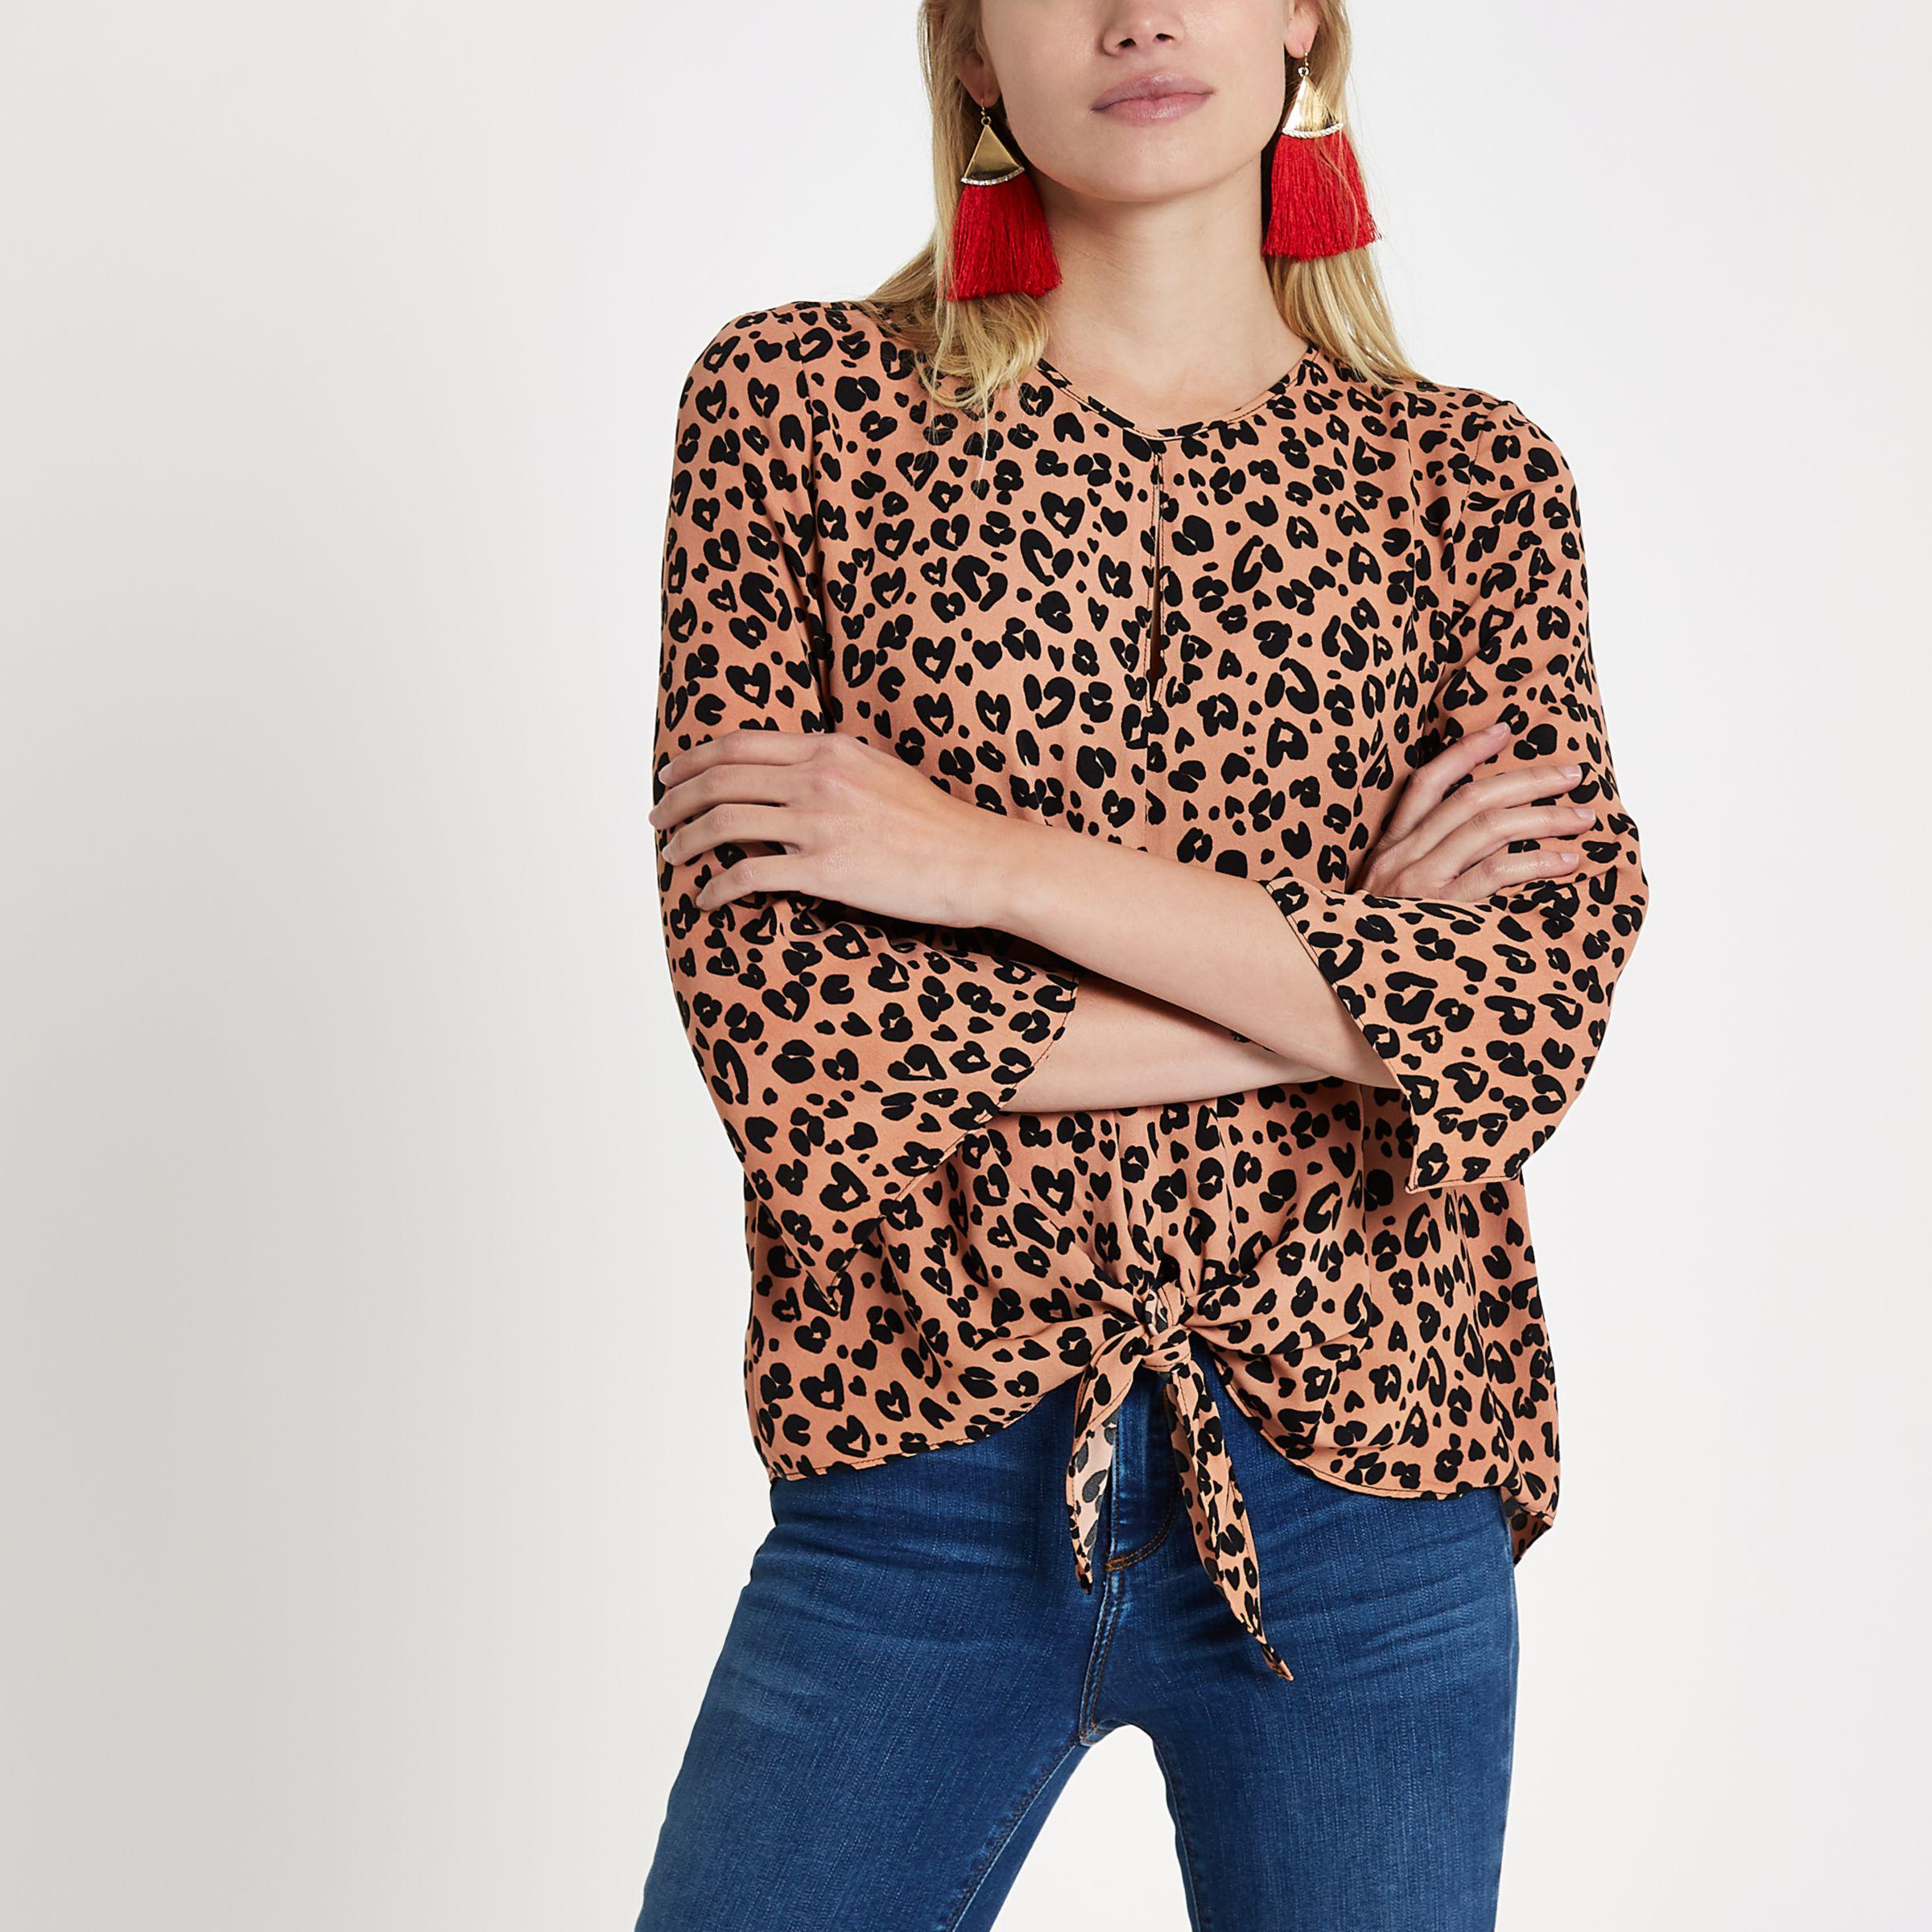 781e9d60af898 River Island Brown Leopard Print Tie Front Top in Brown - Lyst